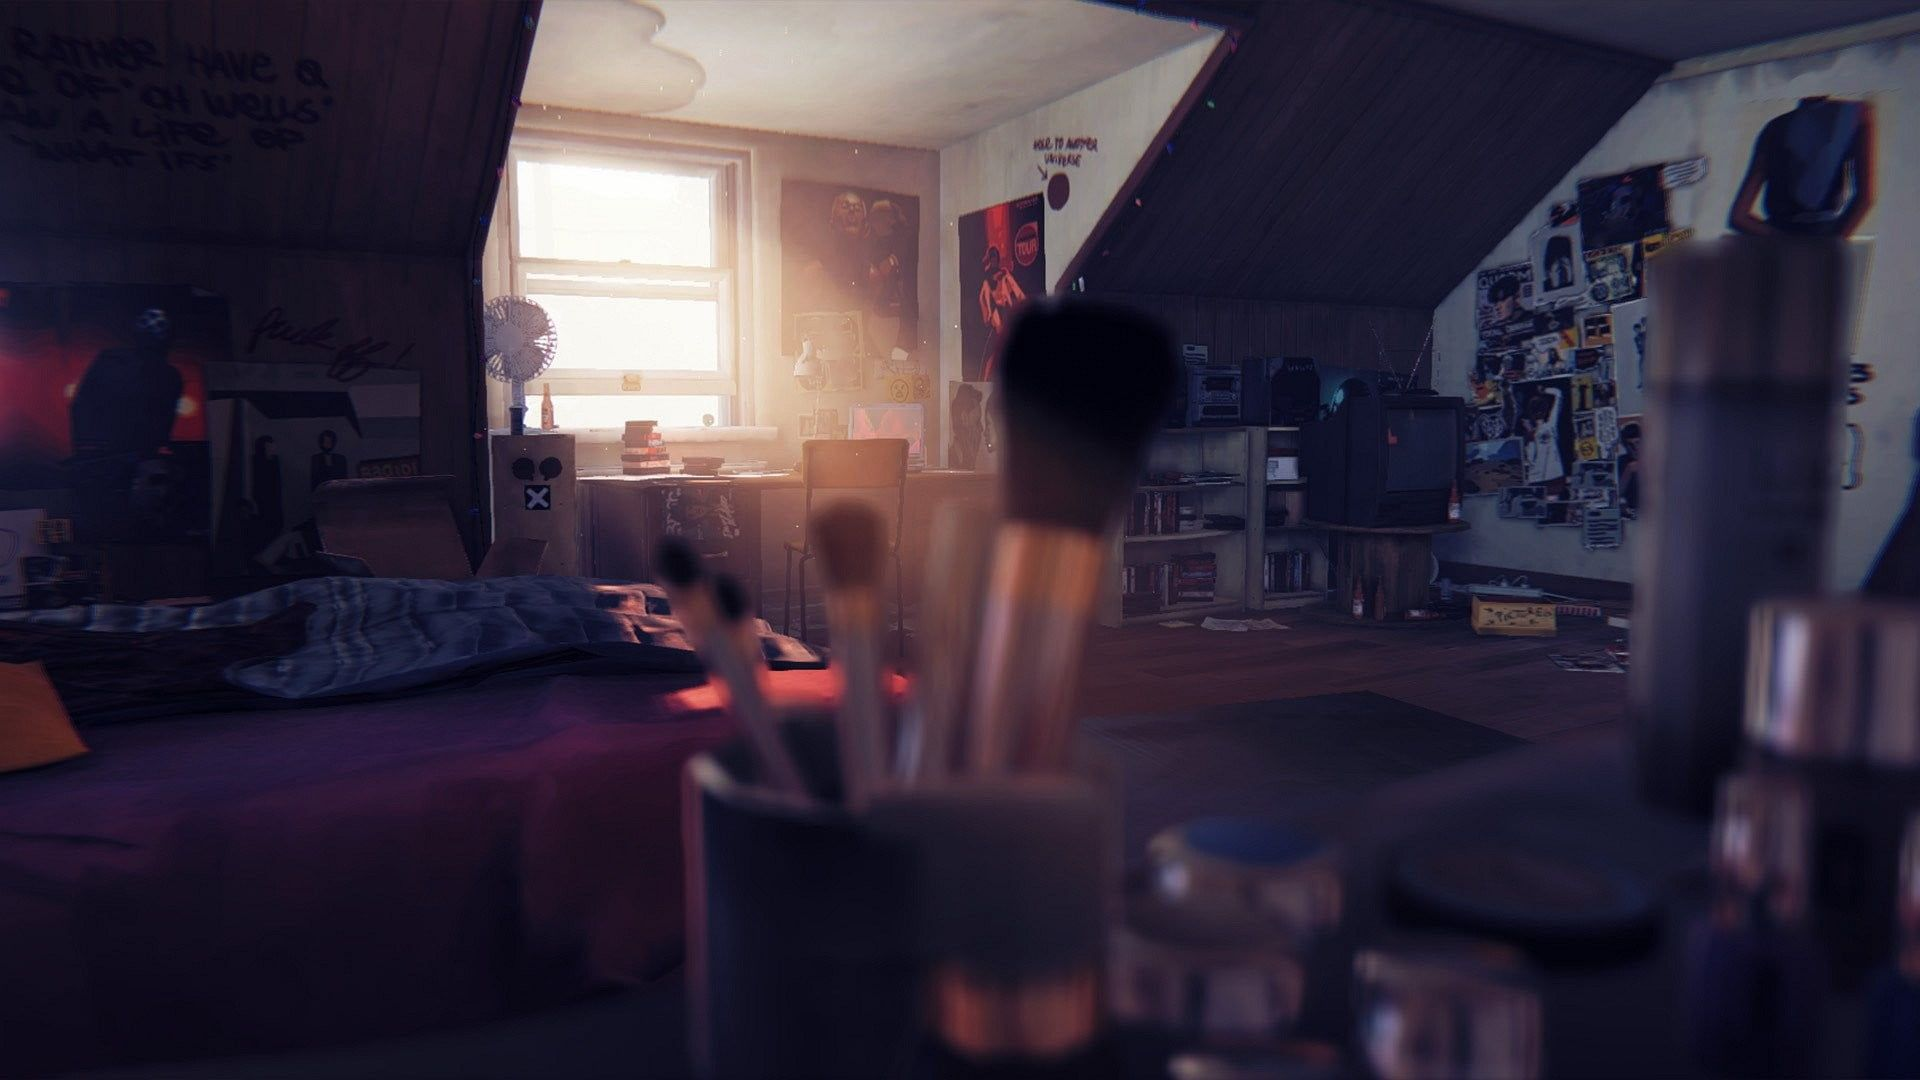 Bedroom Life Is Strange 1080p Wallpaper Hdwallpaper Desktop In 2020 Life Is Strange Wallpaper Life Is Strange Strange